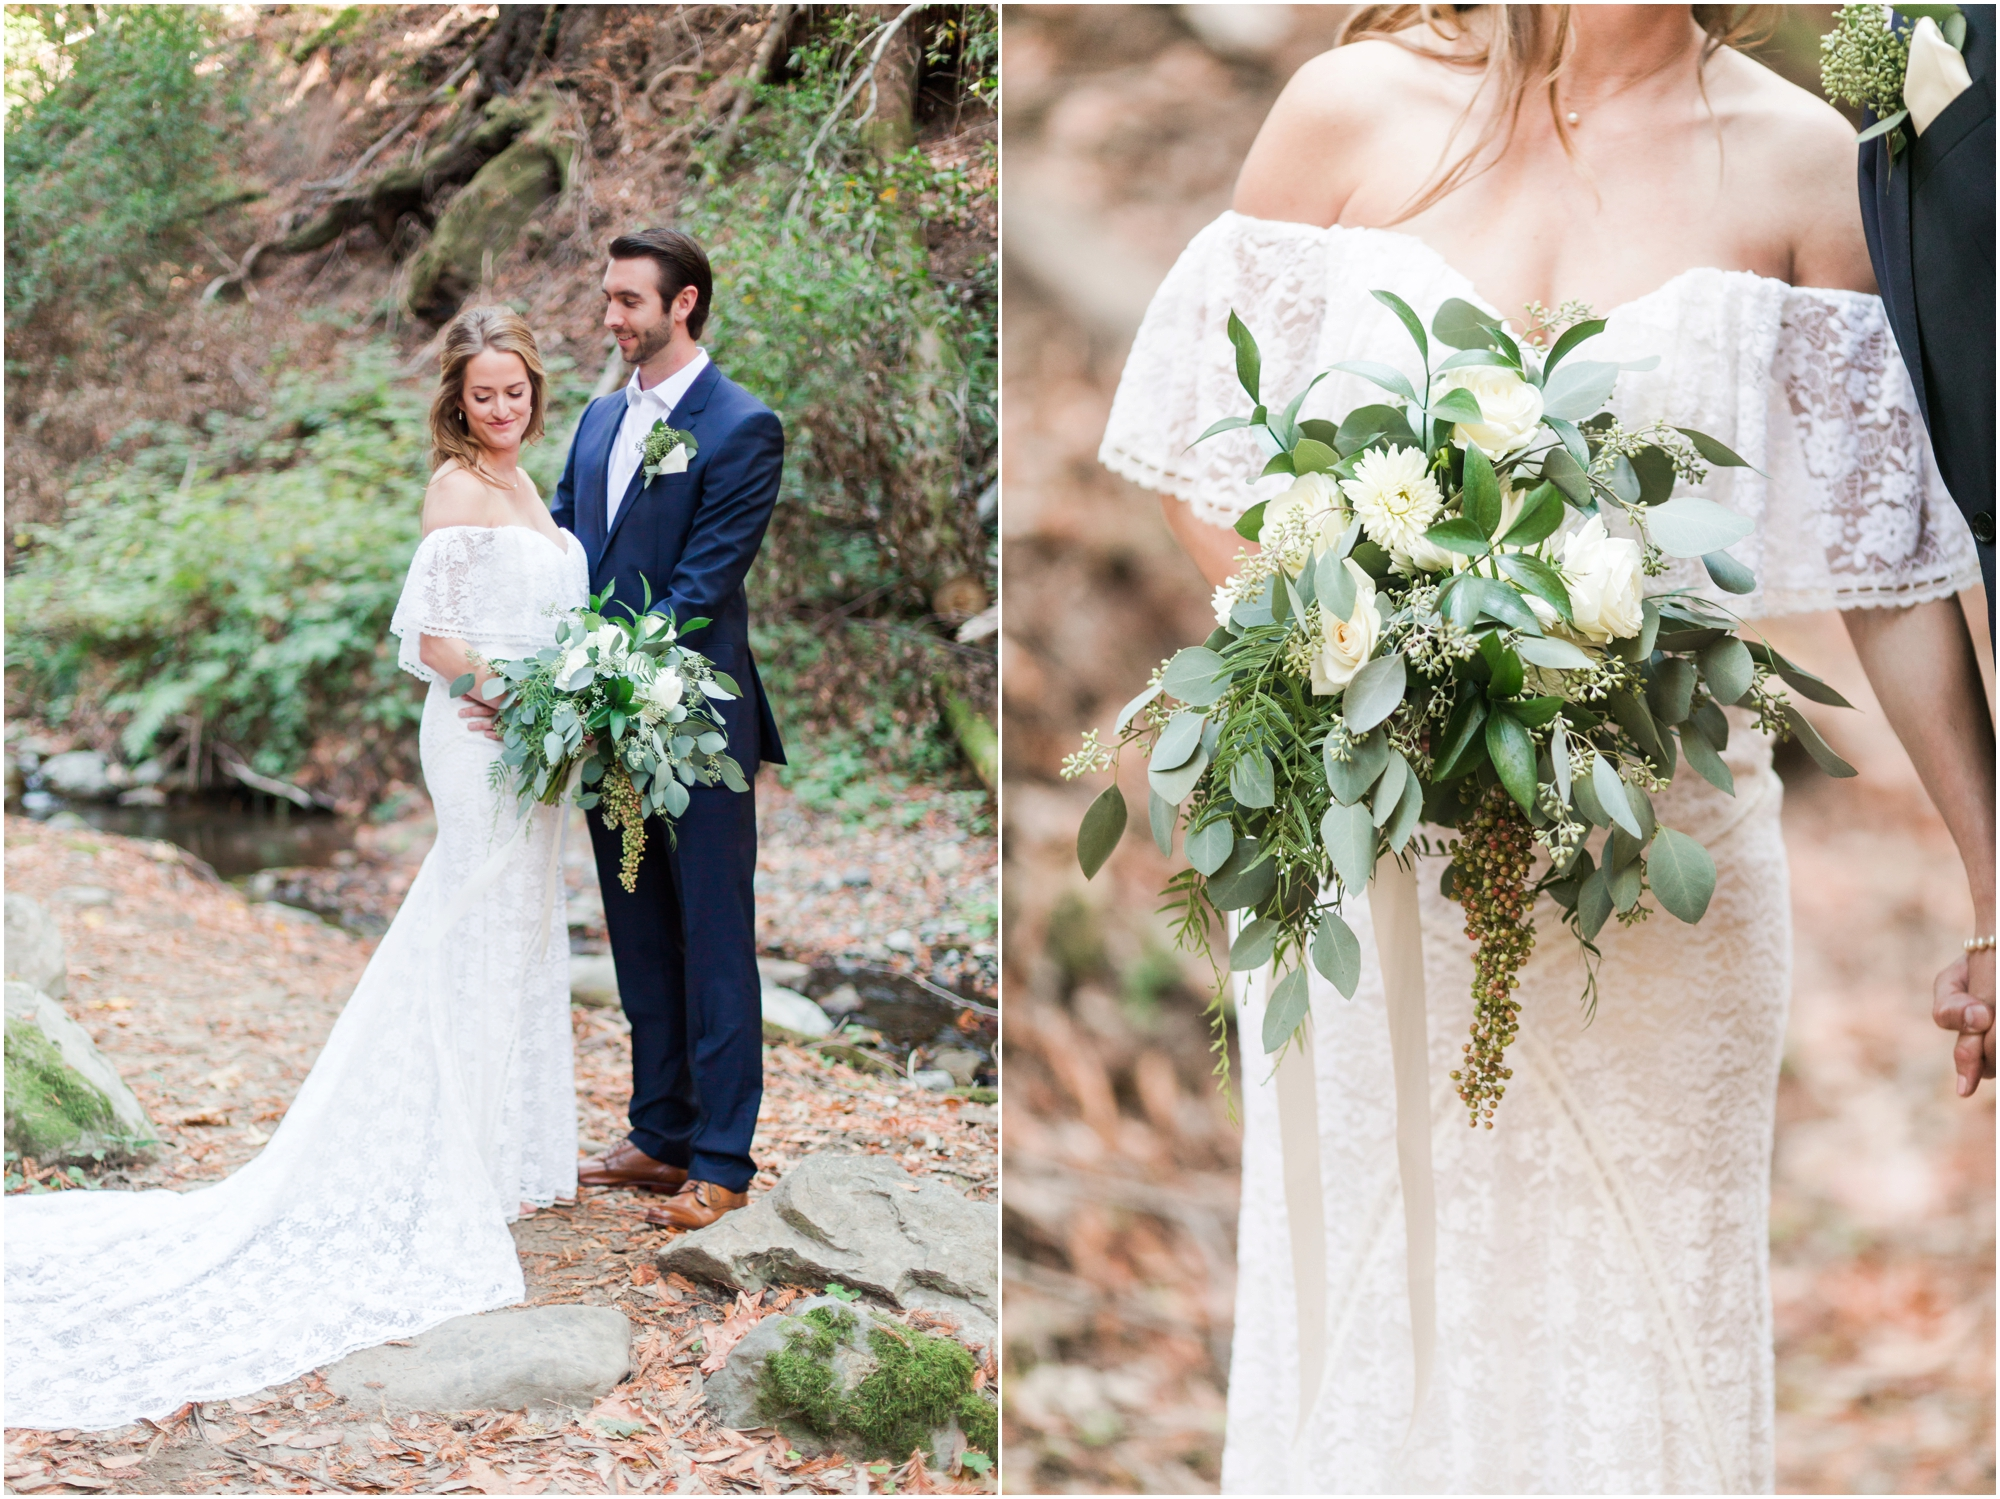 Saratoga+Springs+wedding+pictures+by+Briana+Calderon+Photography_0299.jpg